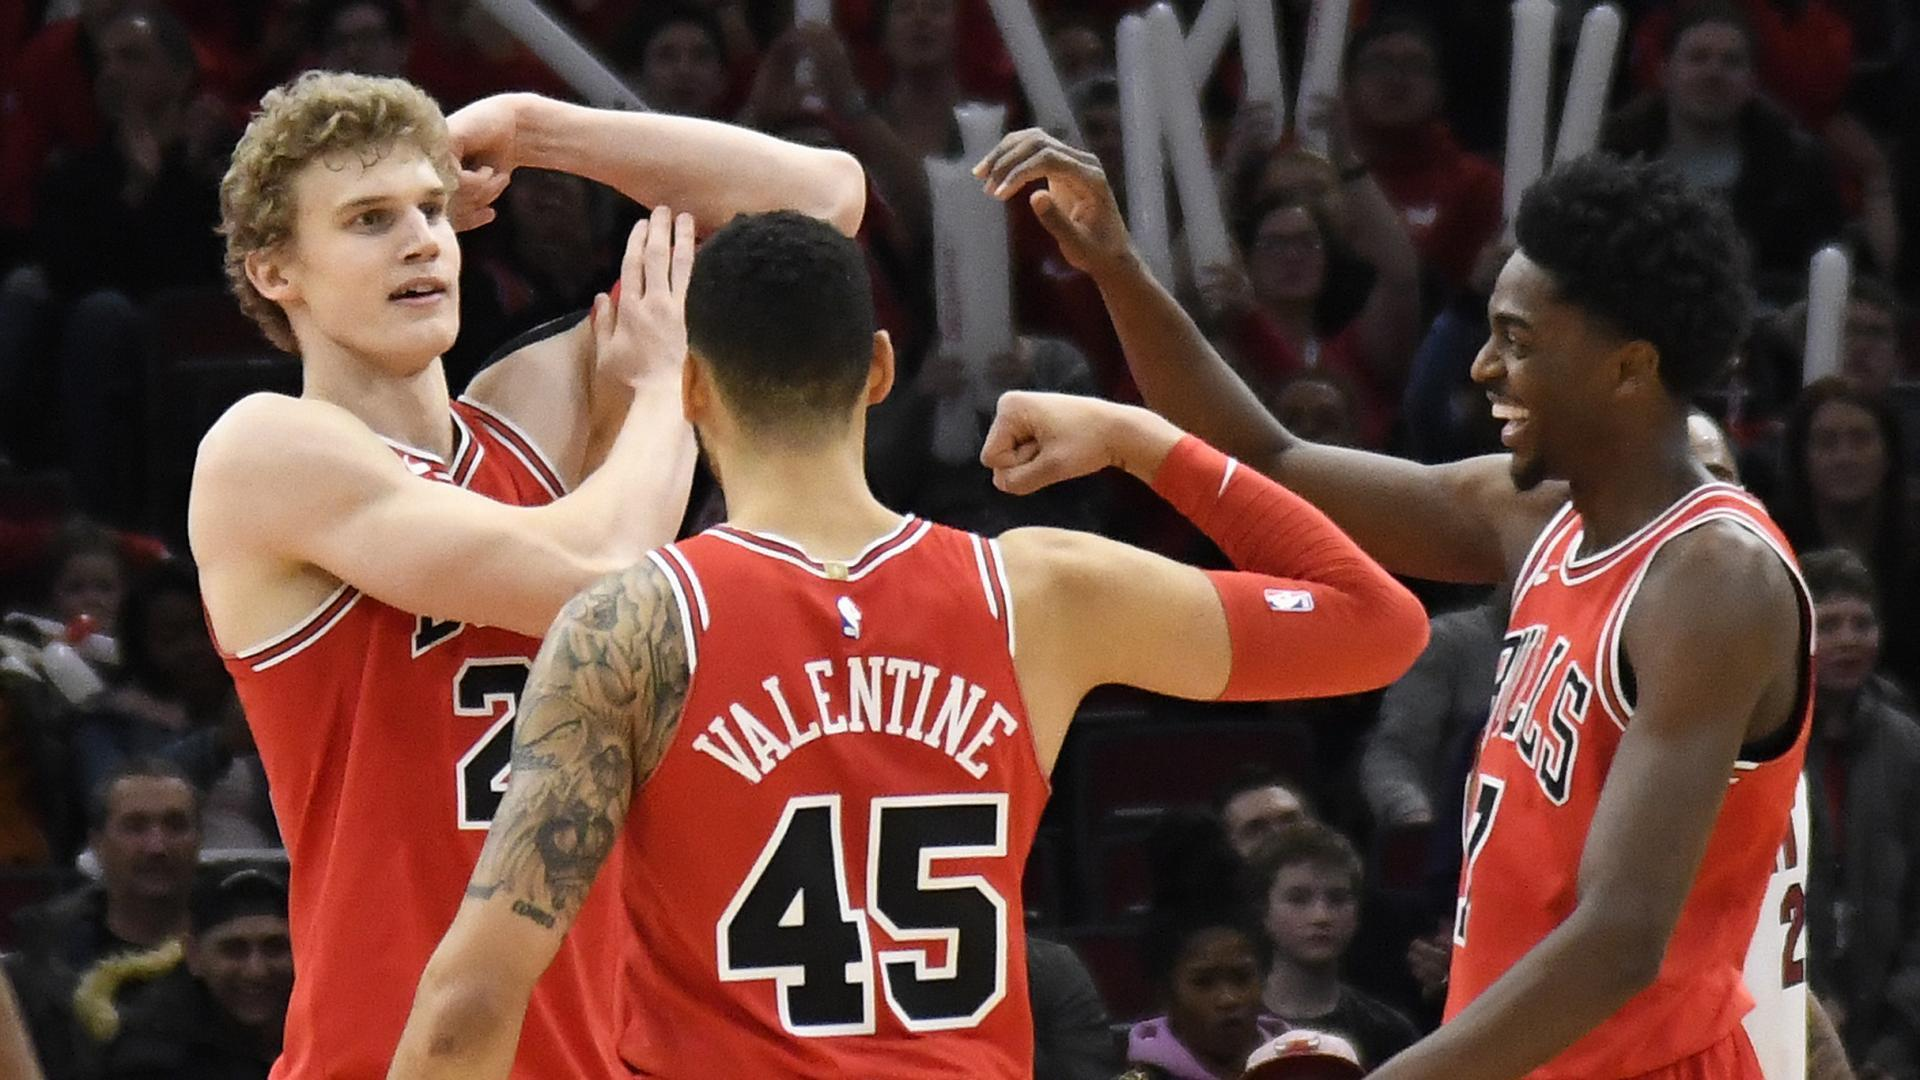 Kris Dunn in Concussion Protocol, Dislocated Teeth Stabilized After Mouth Injury